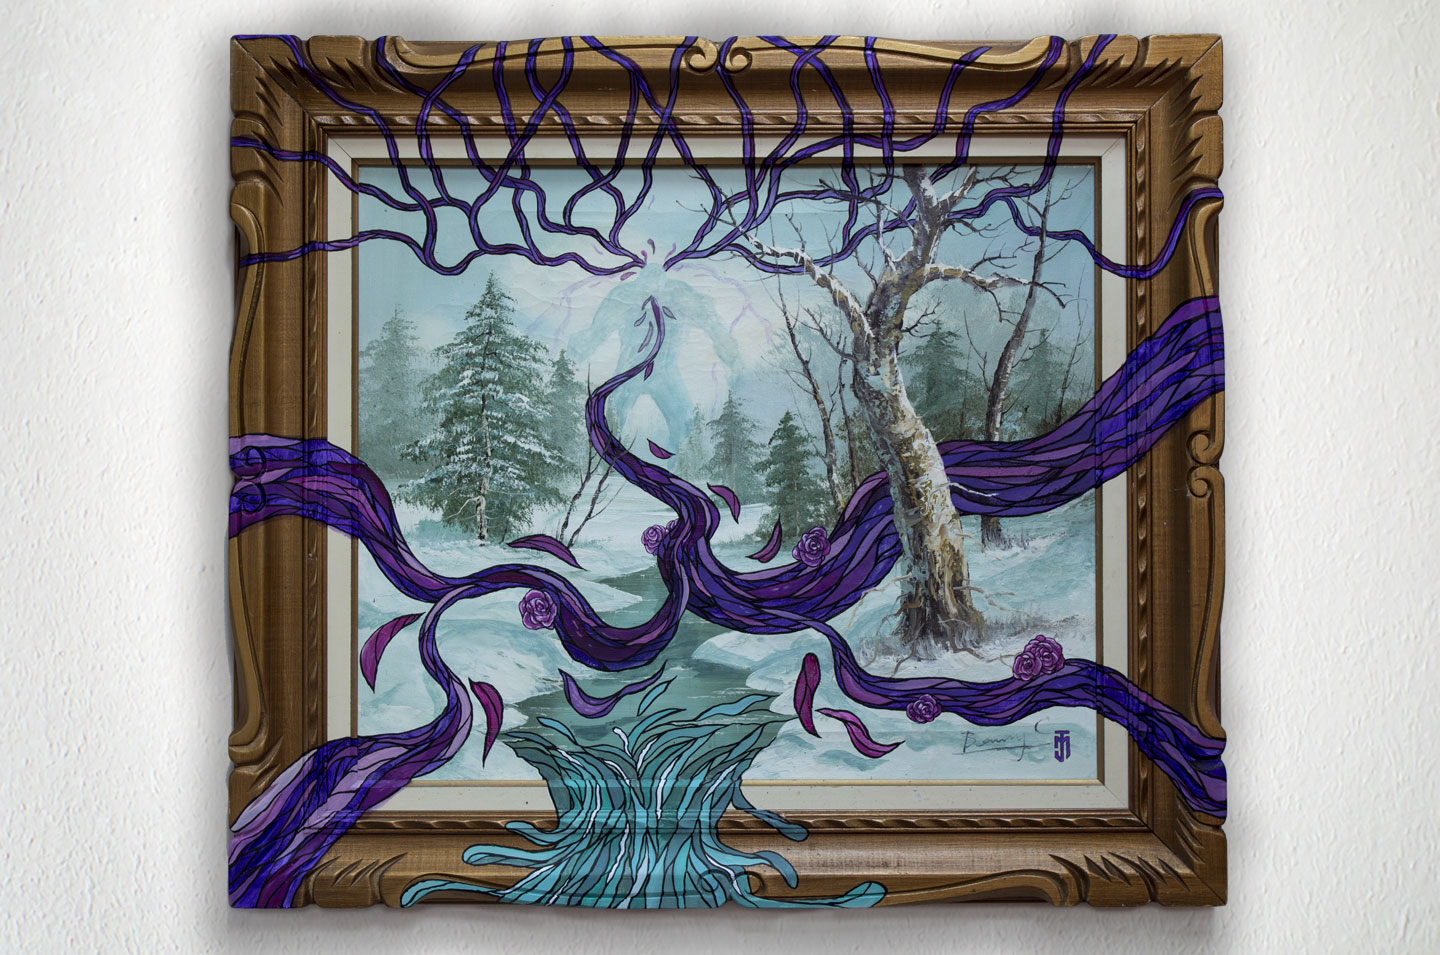 """You Monster You Aded Colour - 31"""" X 27"""" - Acrylic on Thrift Store Painting"""